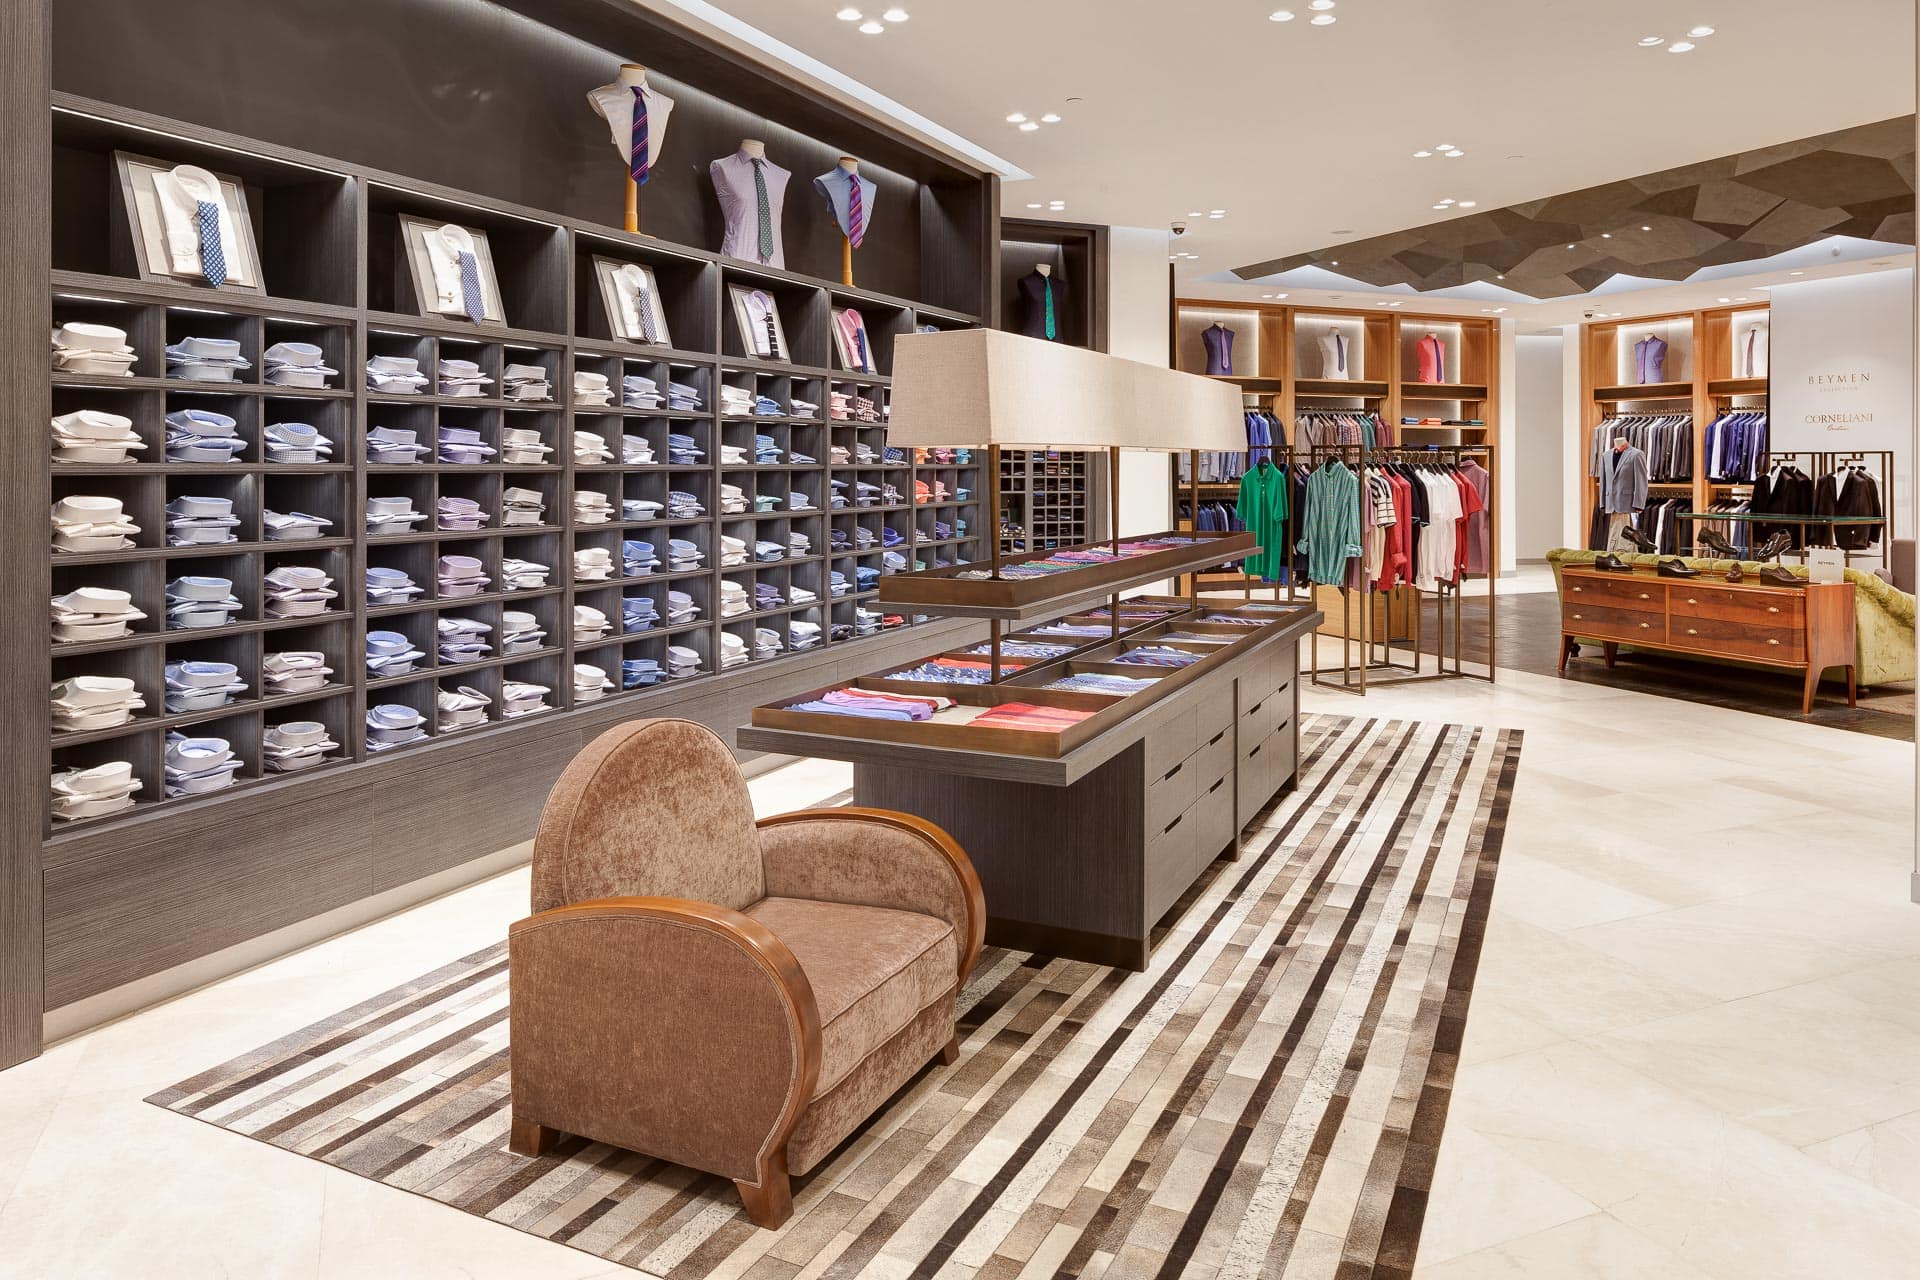 Retail / Interior Design Photography in Istanbul